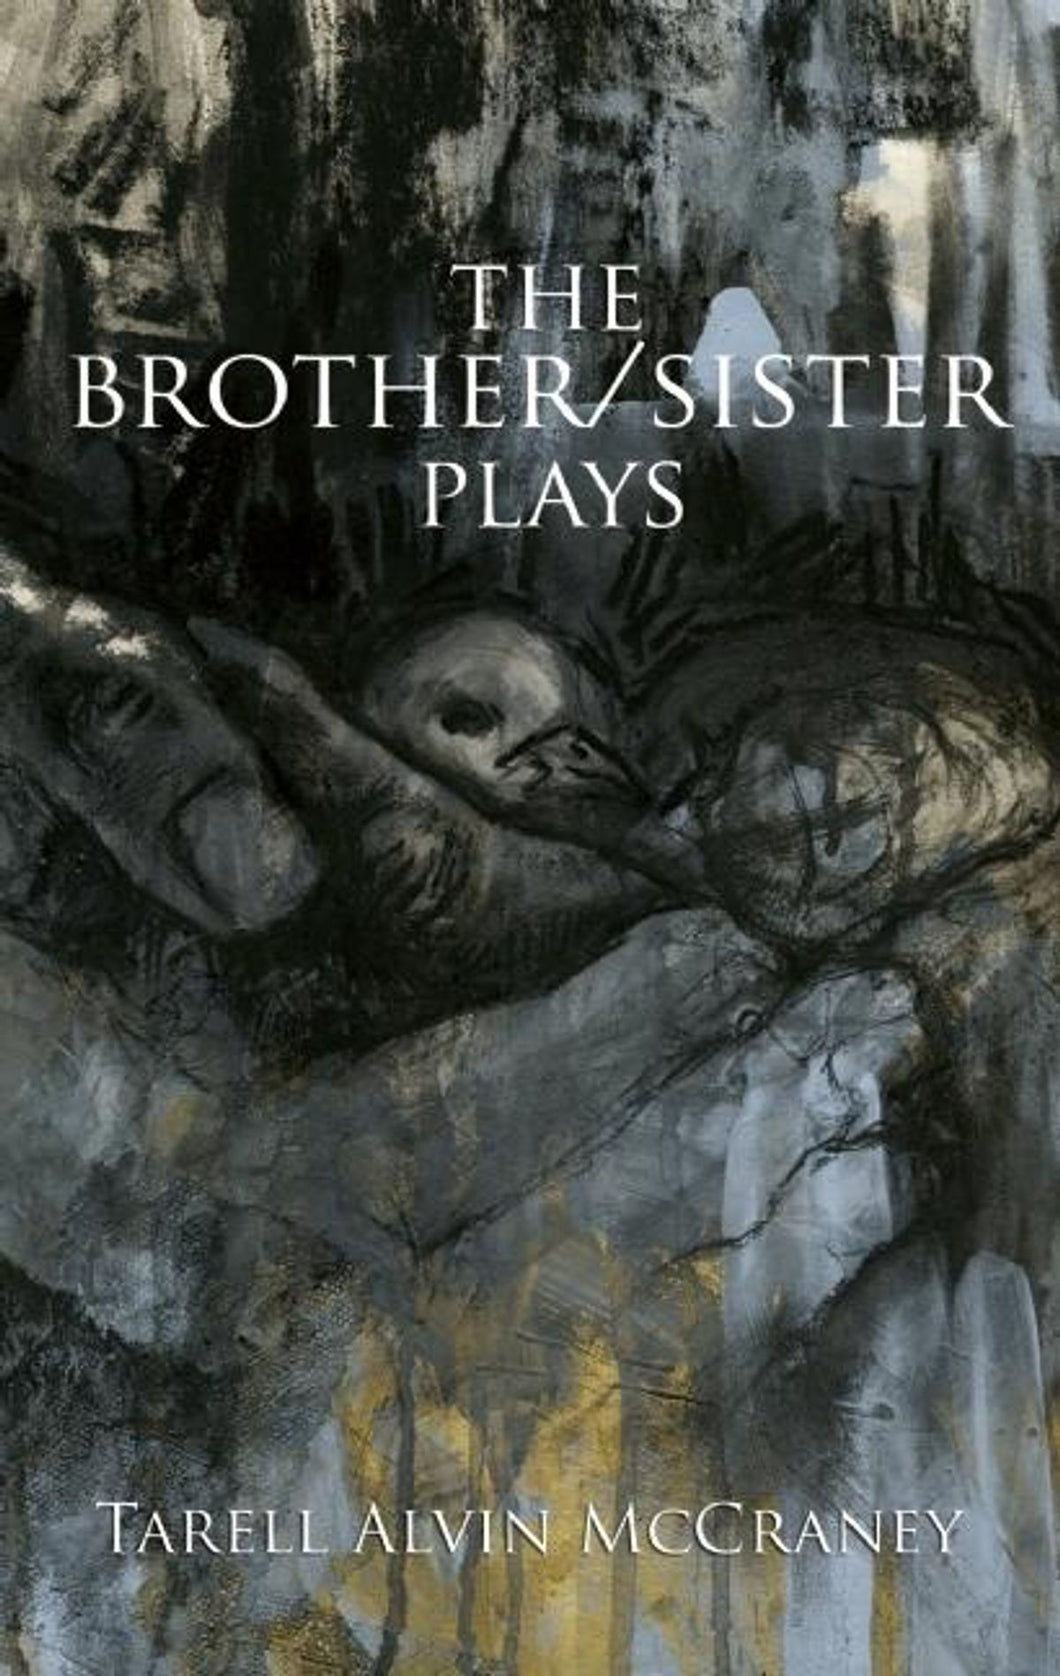 The Brother/Sister Plays by Tarell Alvin McCraney